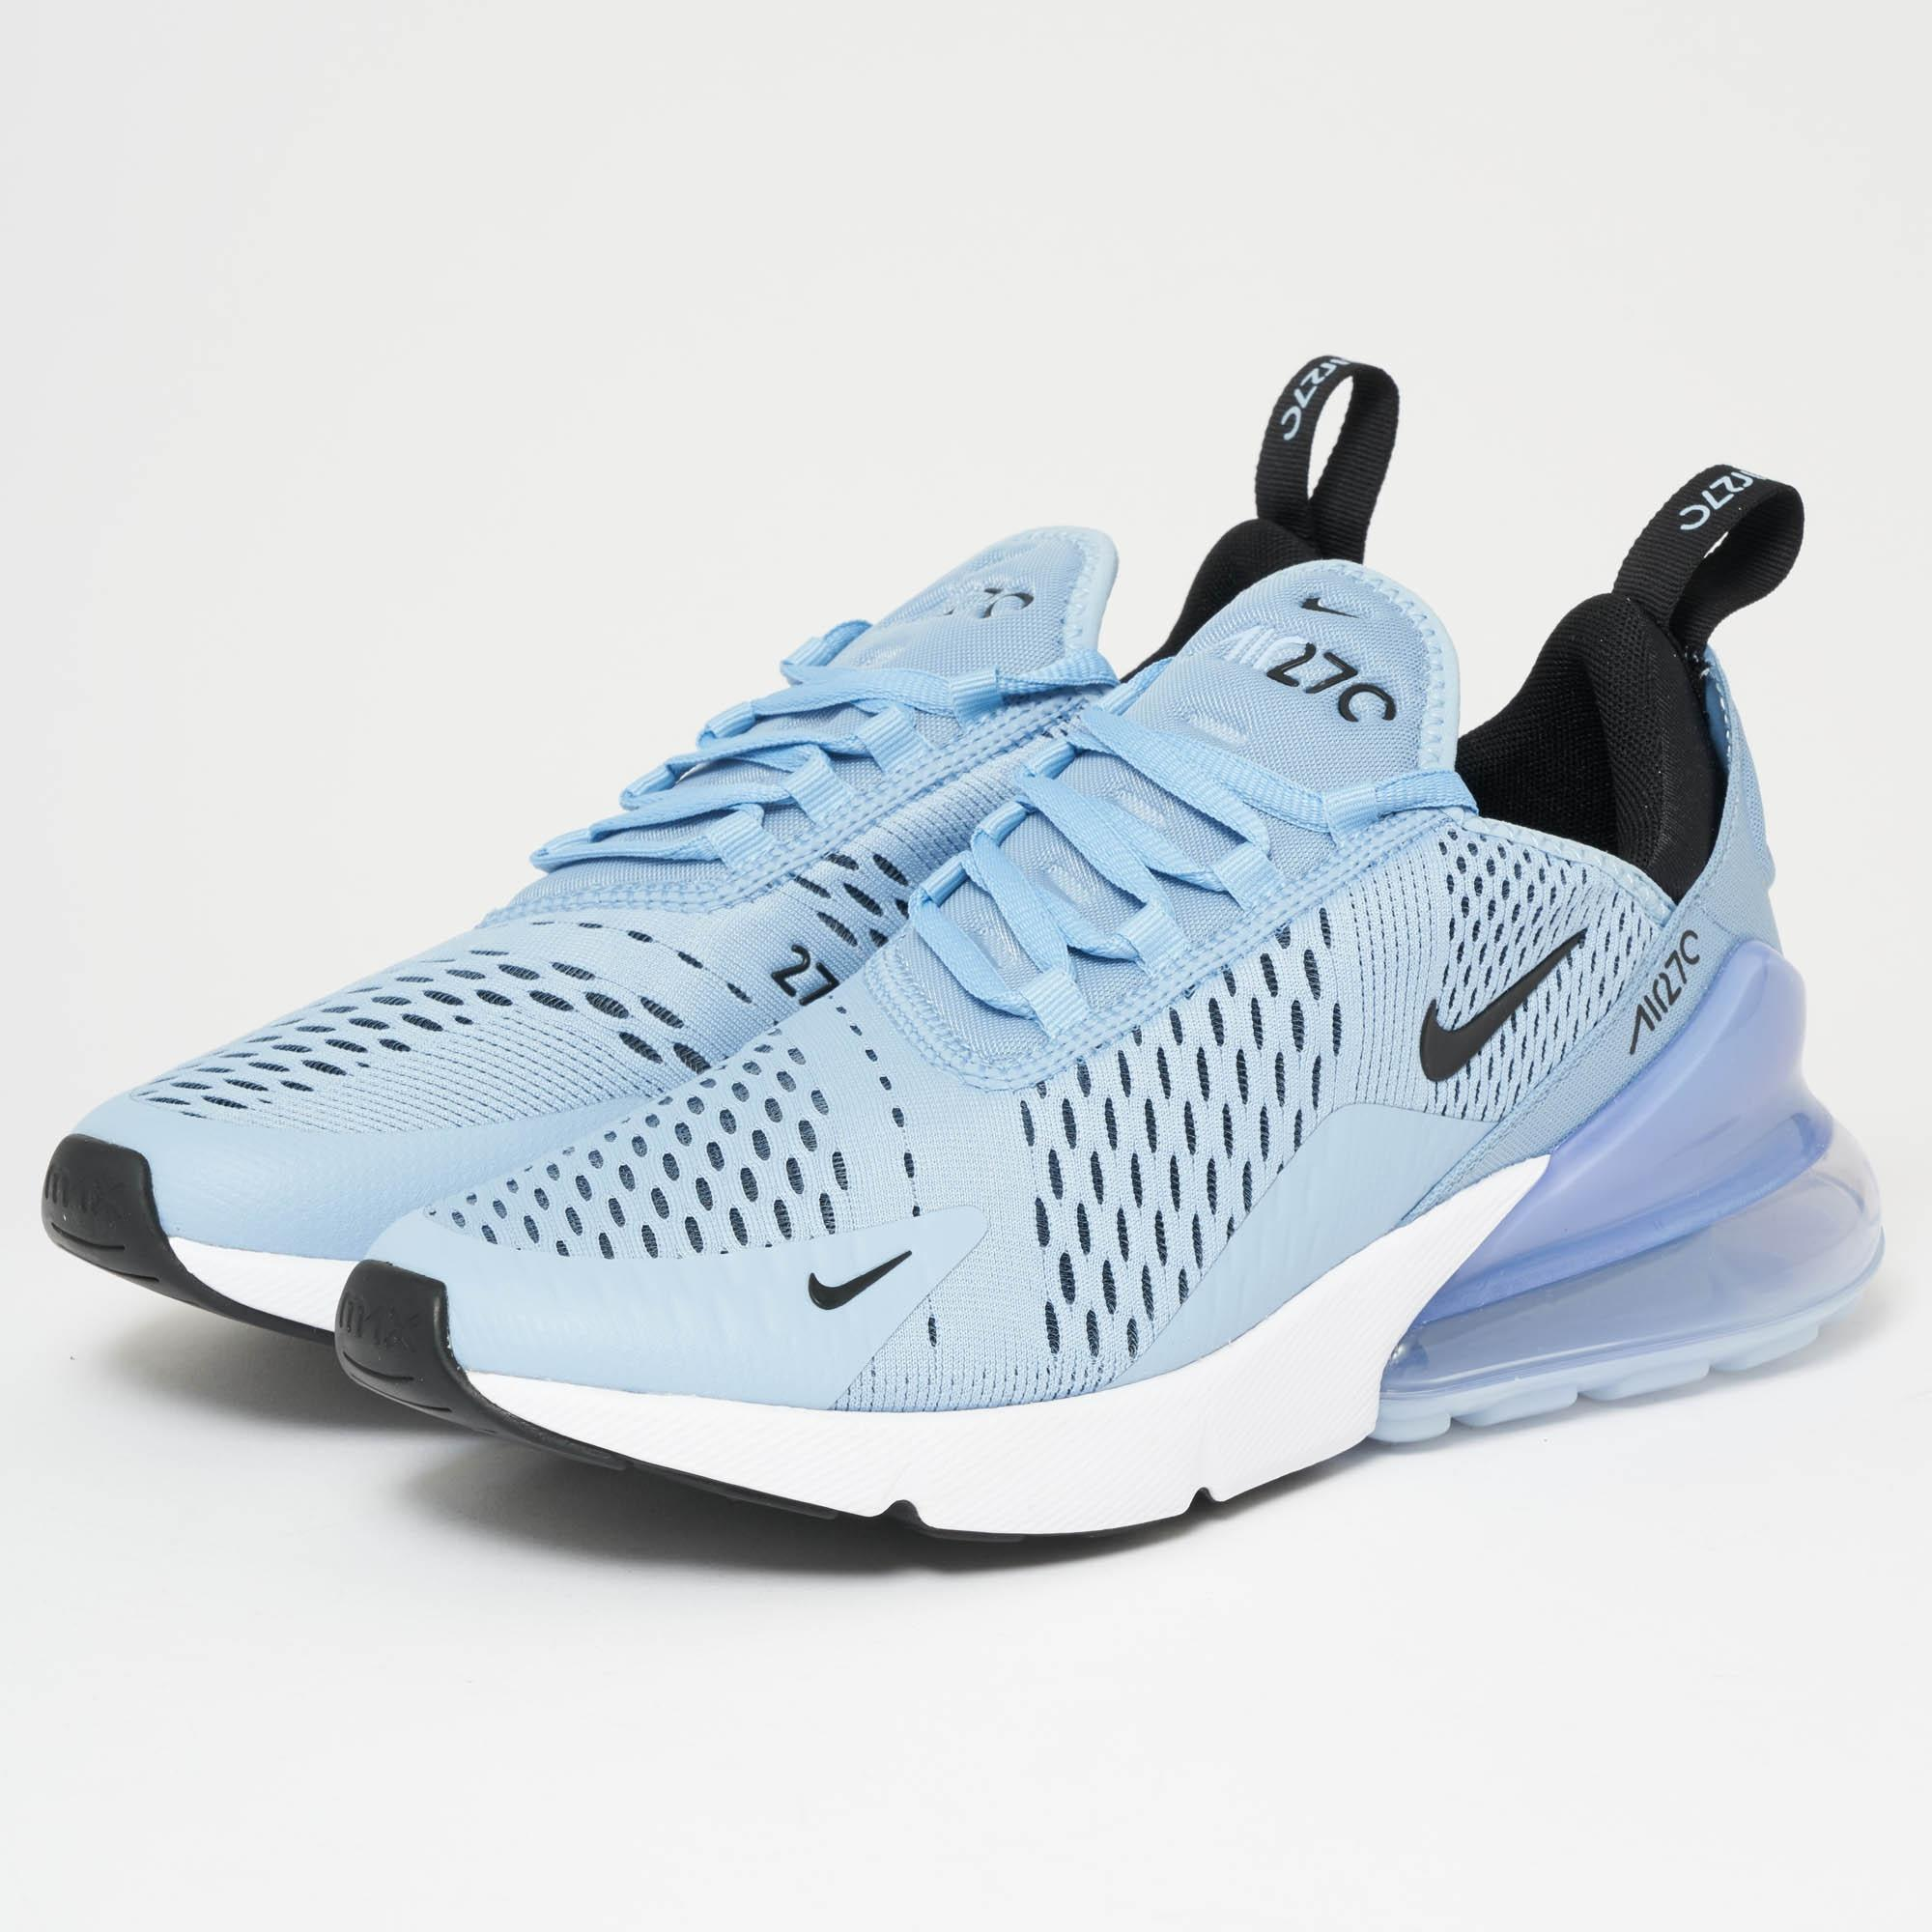 finest selection 70270 a4daa Lyst - Nike Air Max 270 - Leche Blue, Black   White in Blue for Men